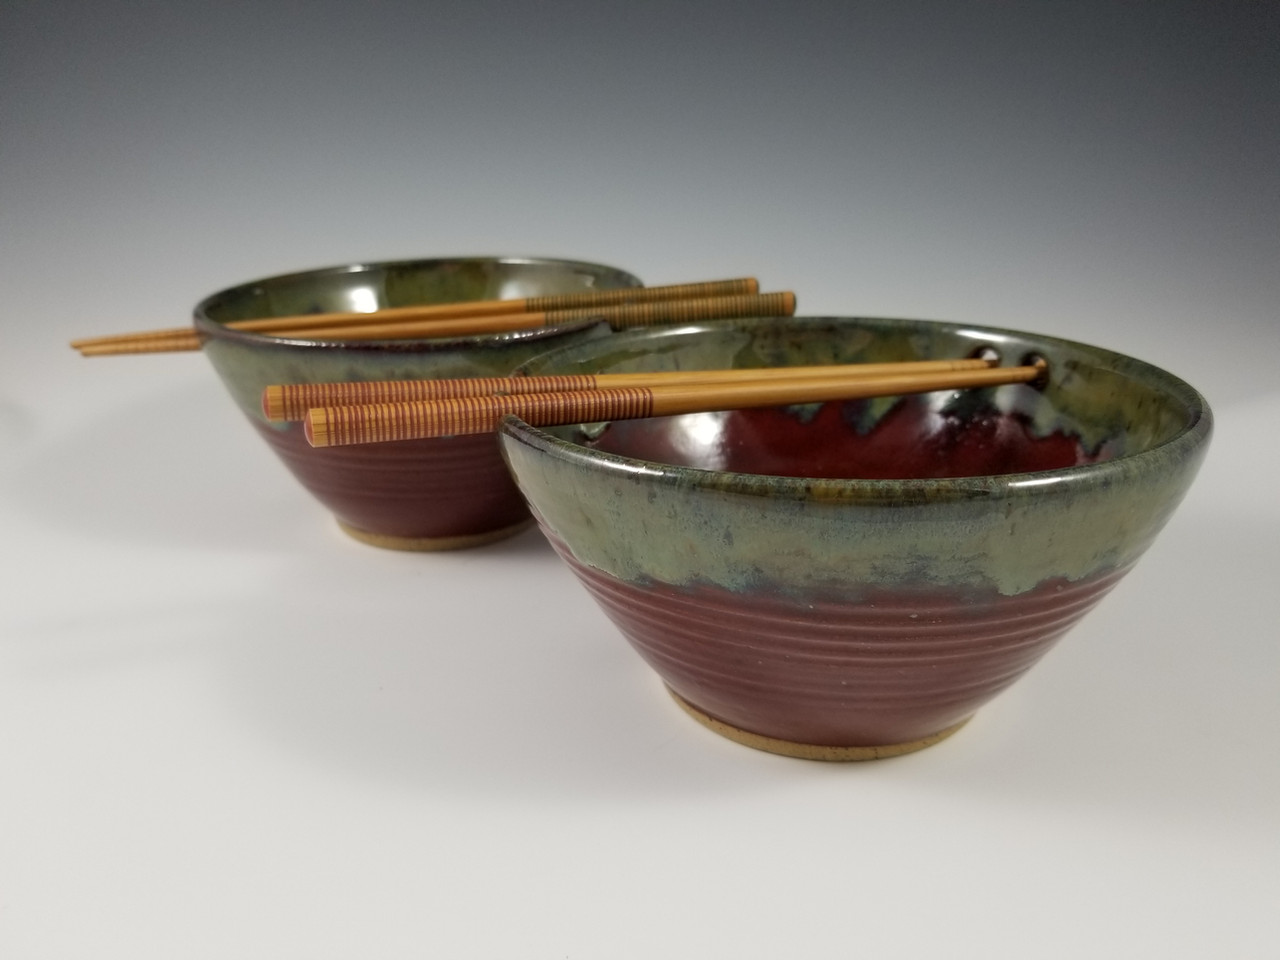 Noodle Bowls in Deep Red with Green Rim